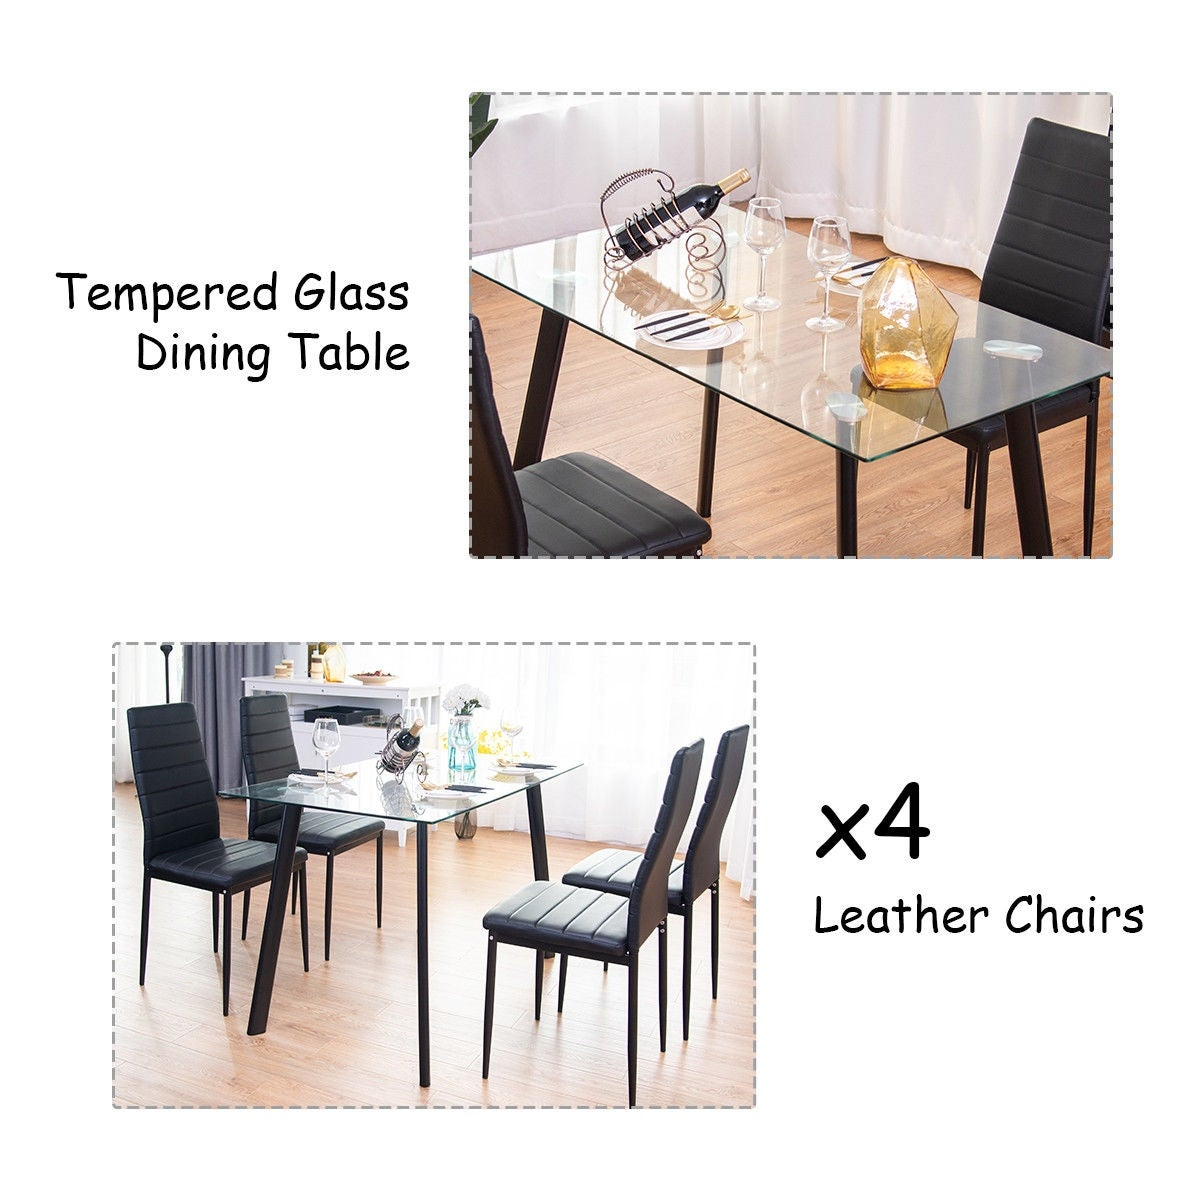 Delicieux Shop Costway Modern Glass Dining Table Set Tempered Glass Top U0026 PVC Leather  Chair W/4 Chairs Black   Free Shipping Today   Overstock   21620974